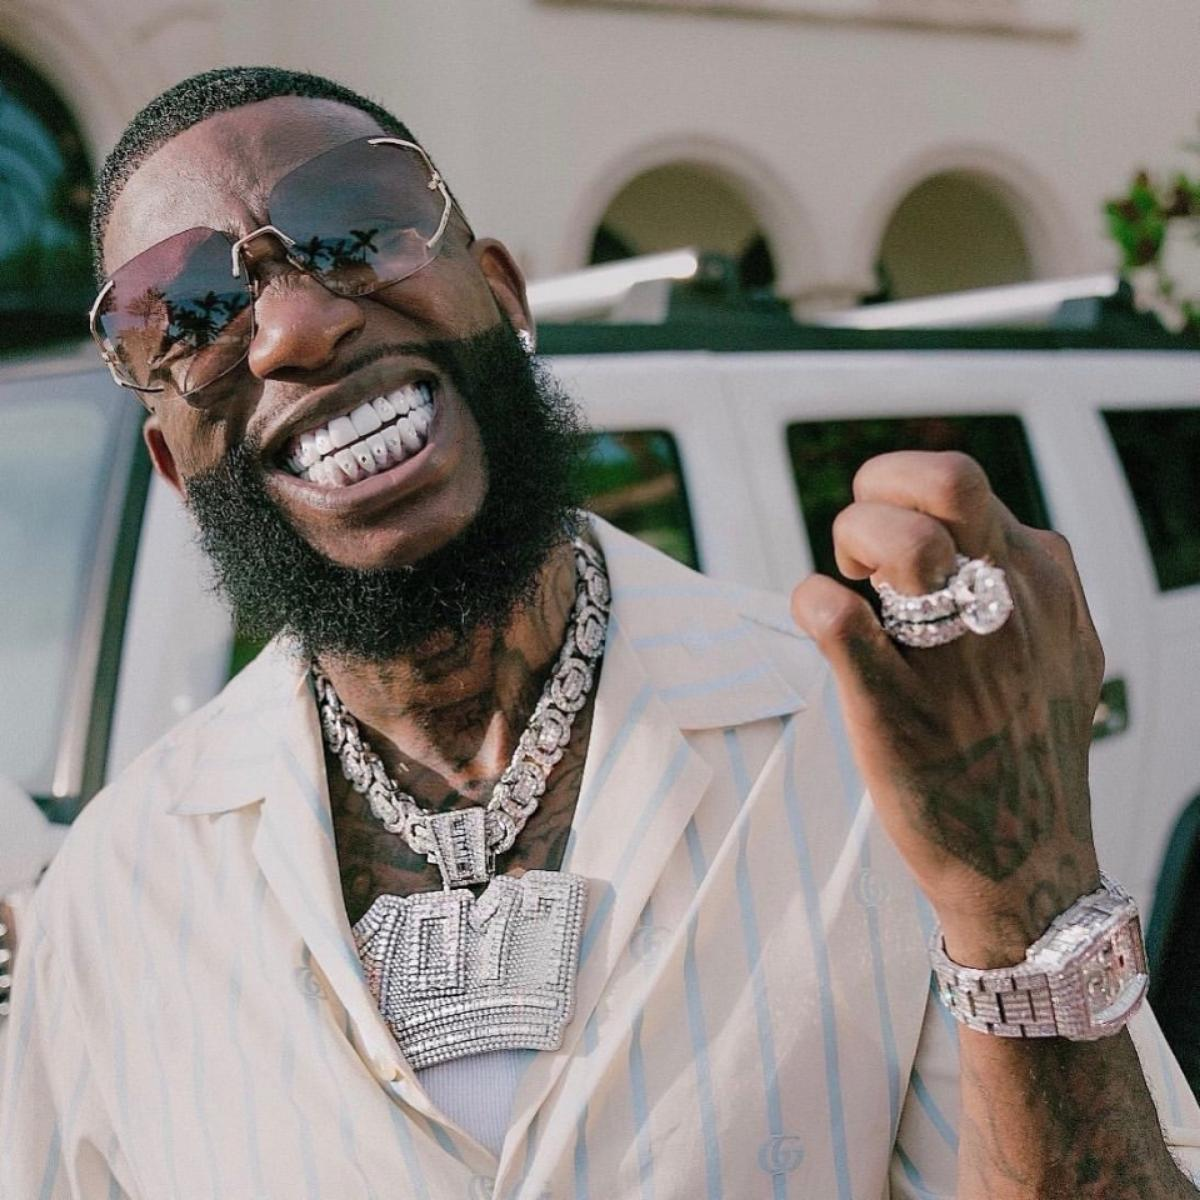 Gucci Mane $250K Diamond Encrusted Teeth